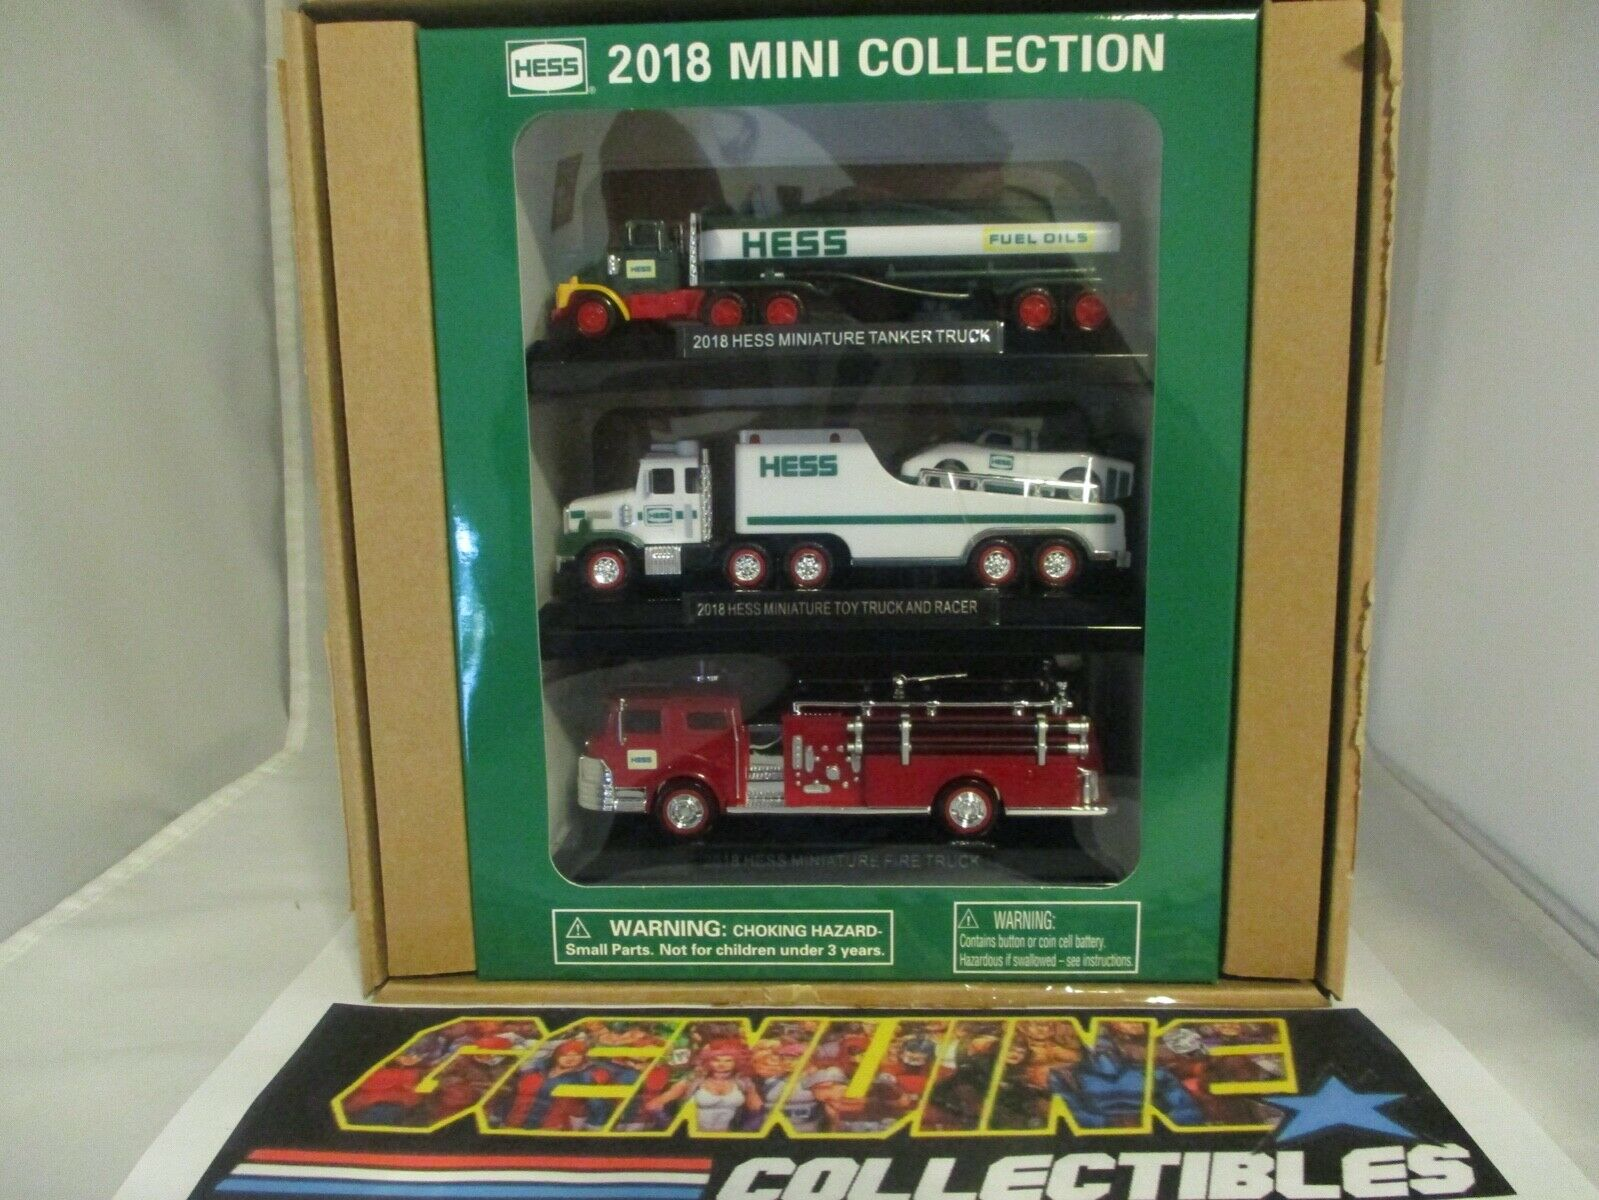 nuovo 2018 Hess MINI giocattolo TRUCK collezione completarely Sold Out at Hess Website